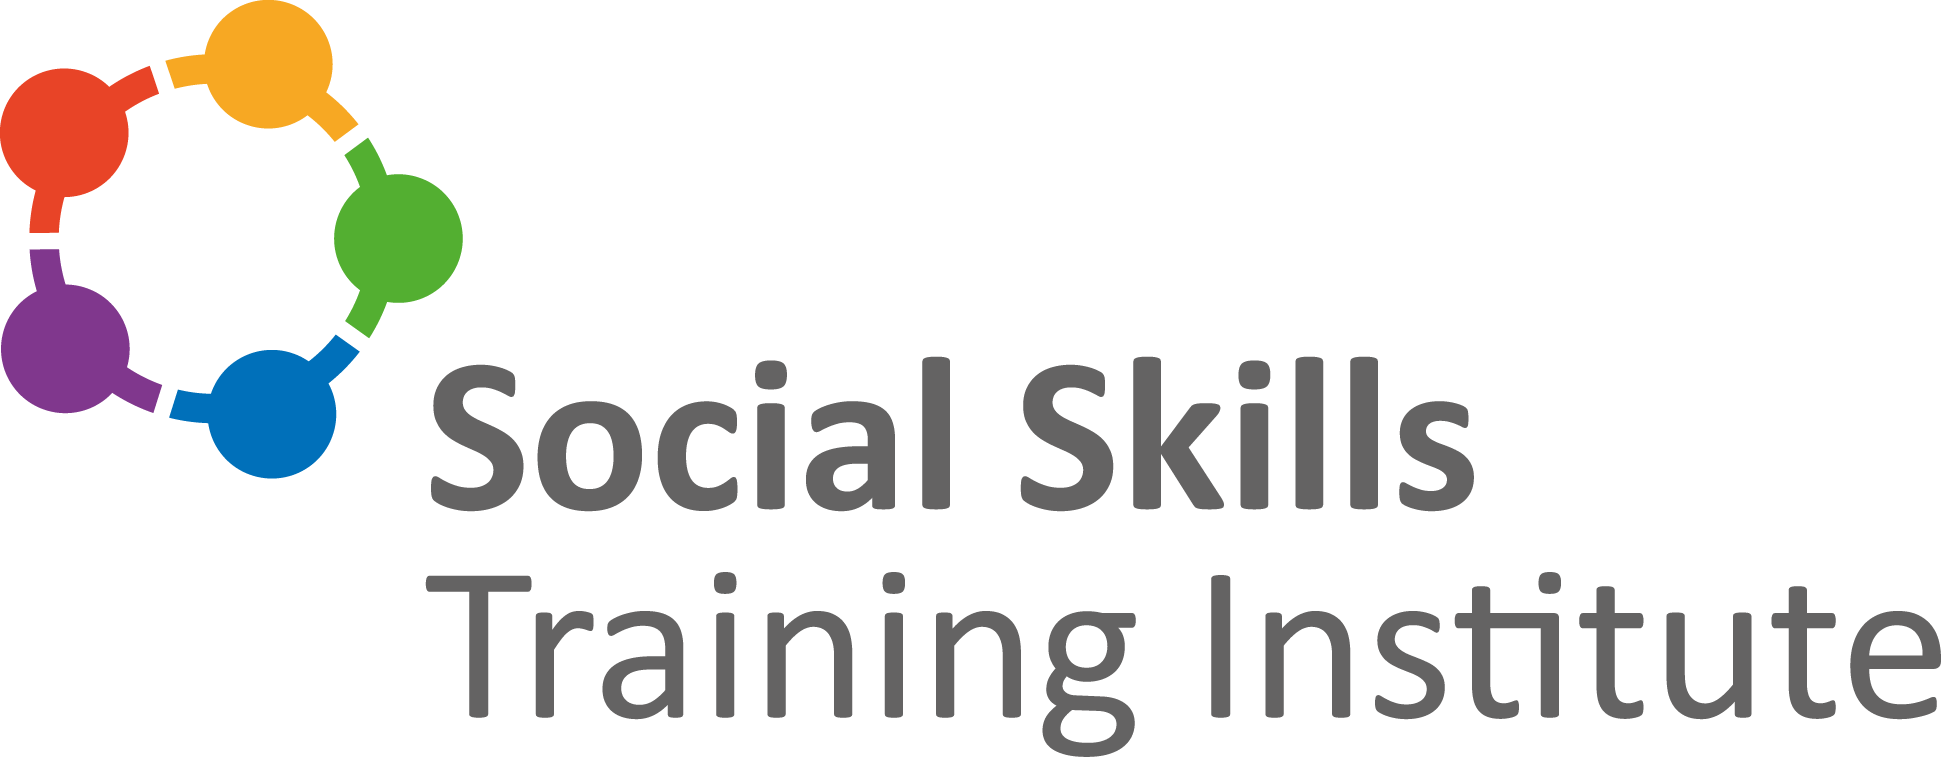 Social Skills Training Institute